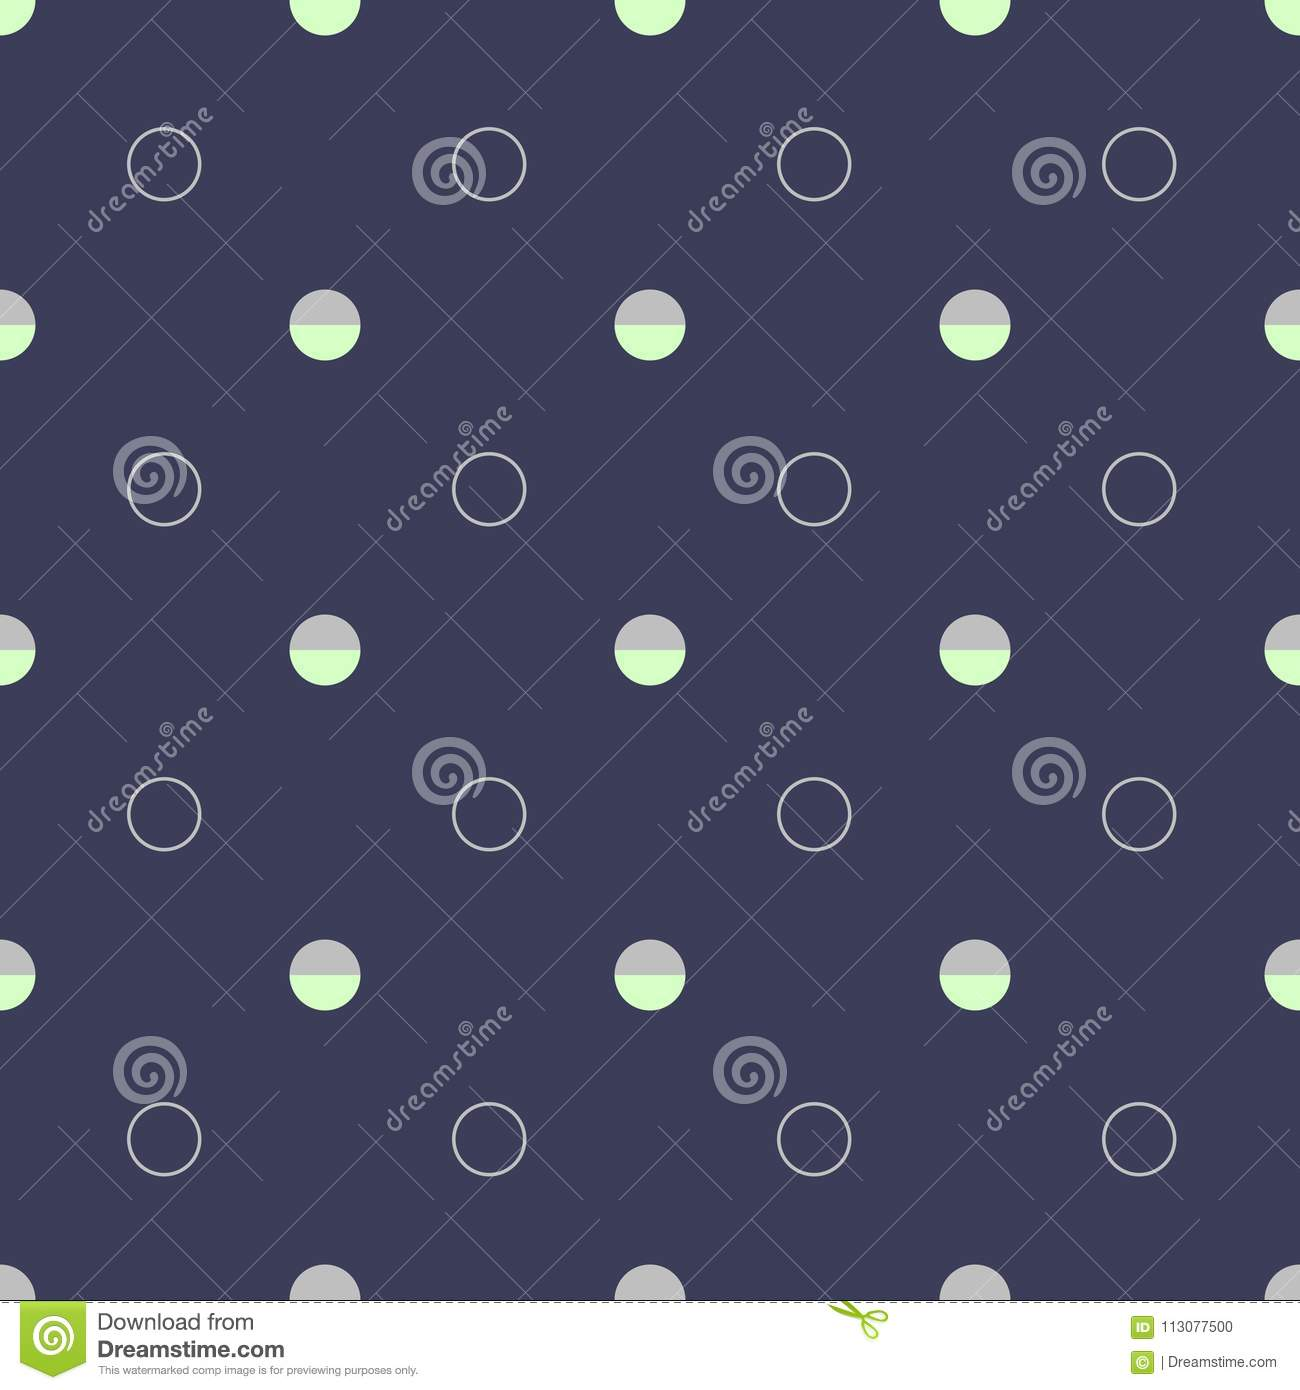 Abstract seamless pattern with circles on dark blue background.